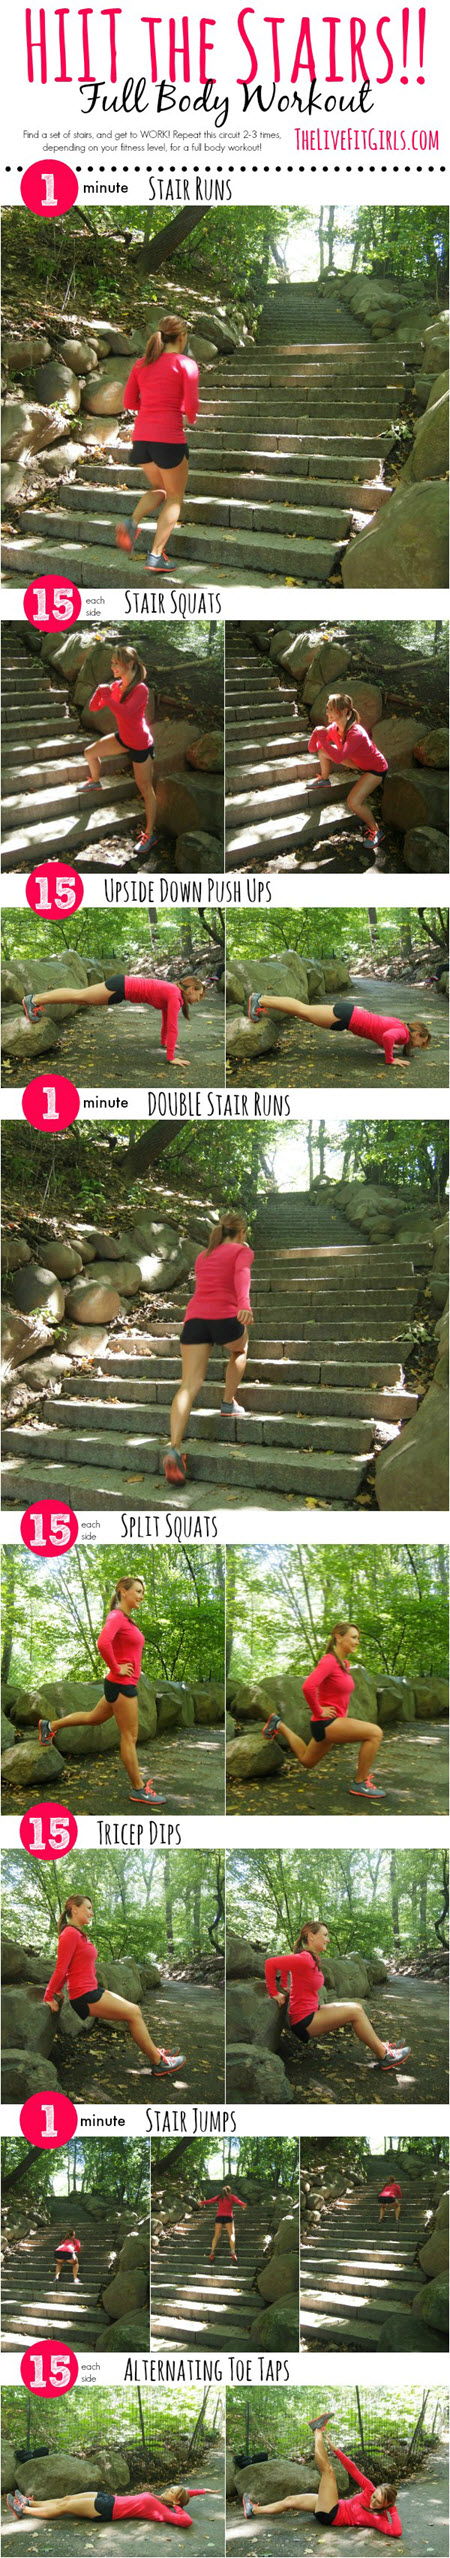 hiit-stairs